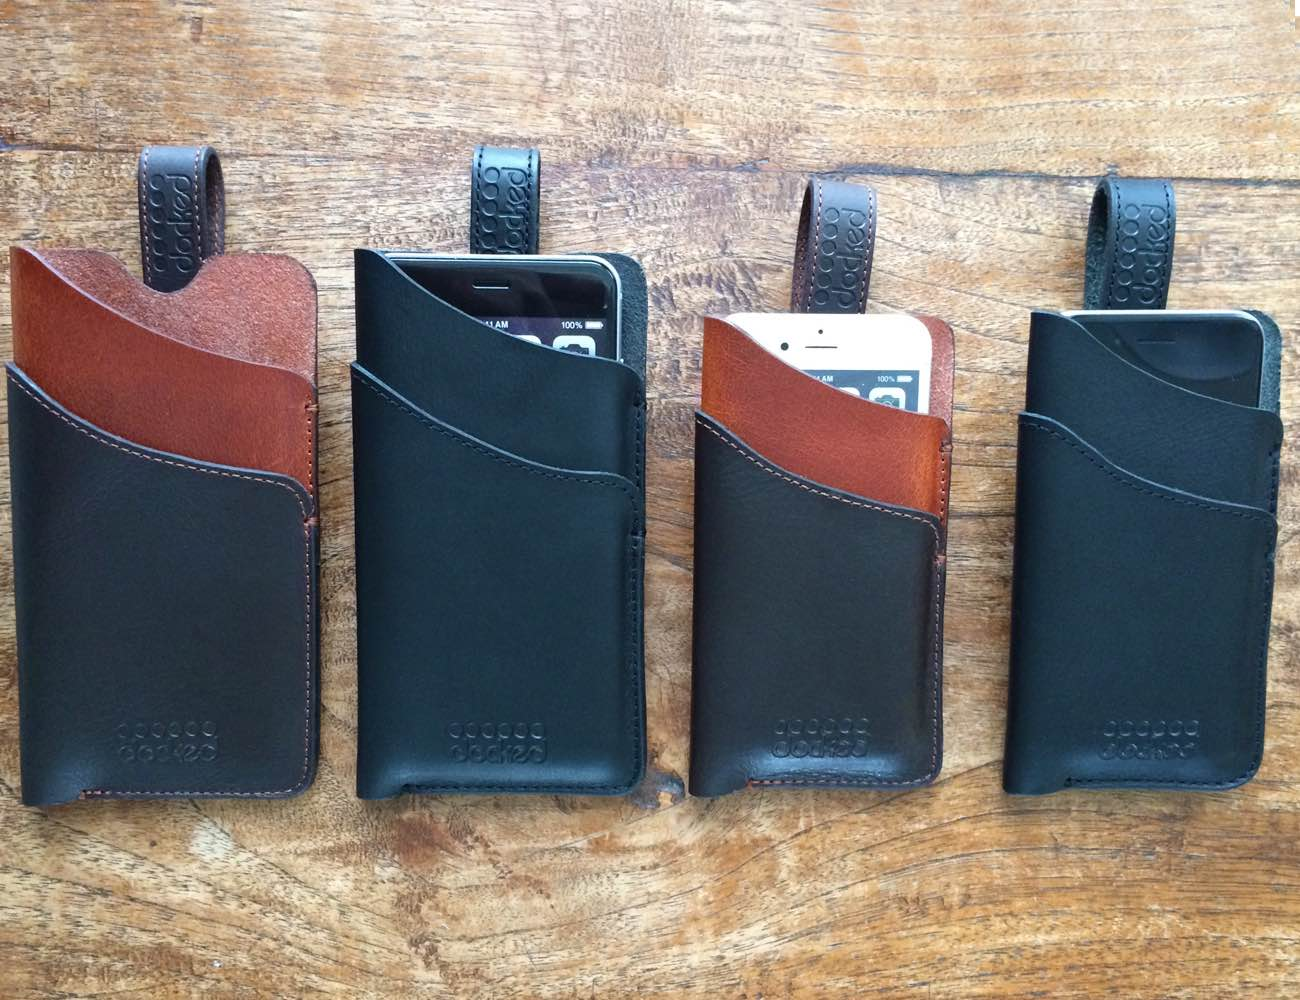 6 Pocket Sleeve for iPhone 6 and 6 Plus